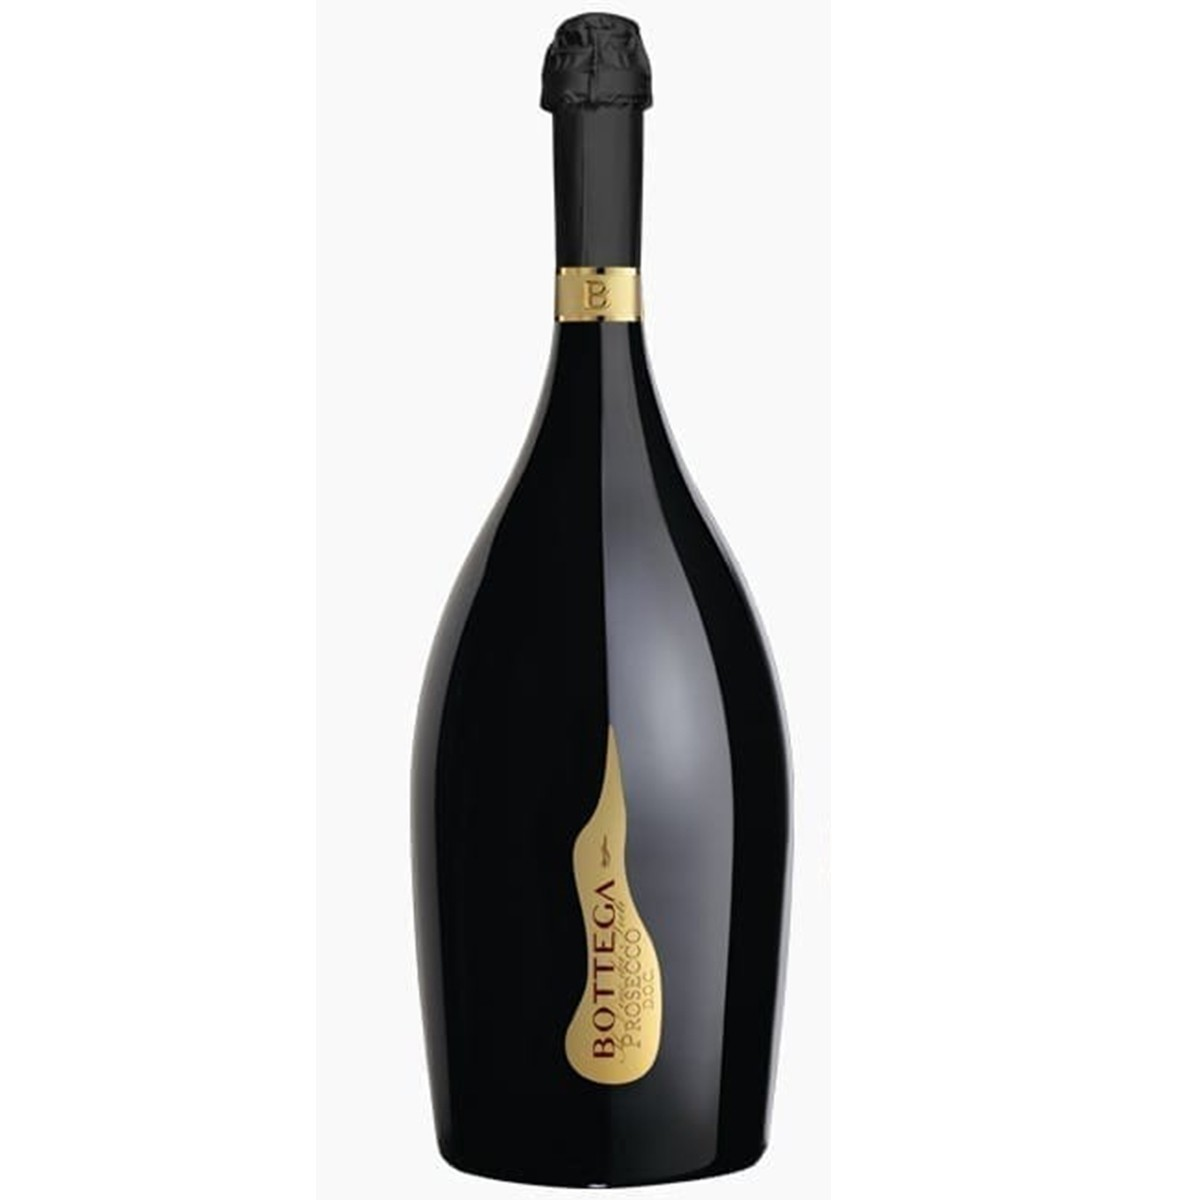 Bottega Poeti Prosecco Spumante 3000 ml